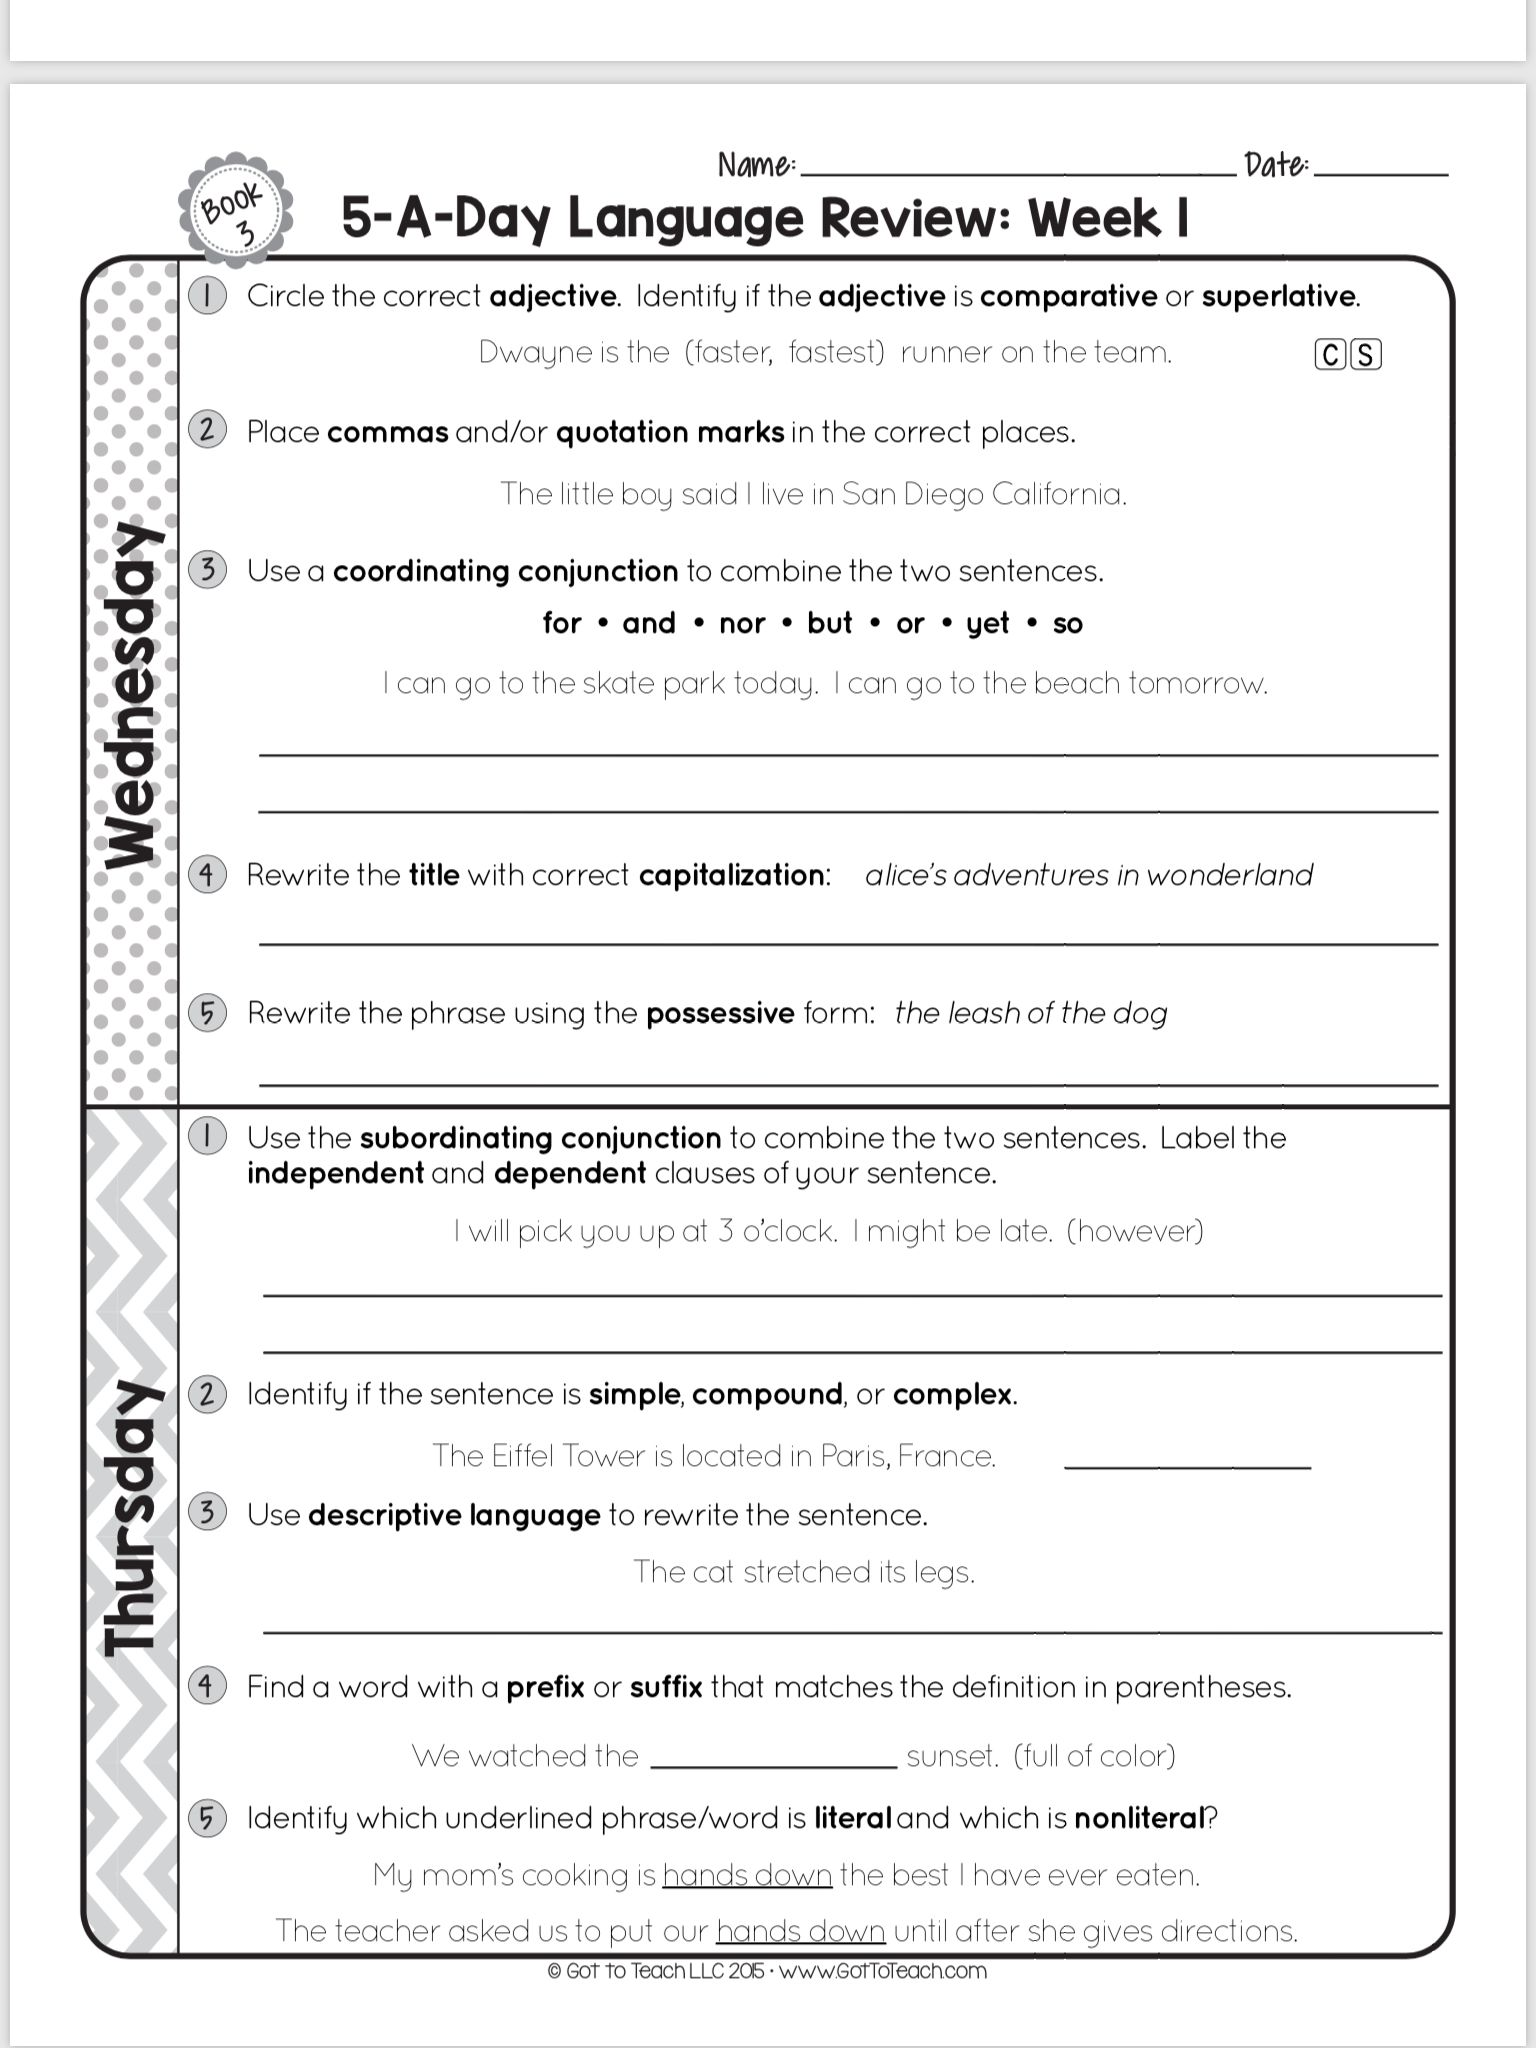 Pin By Freda Pittard On Third Grade Language Arts Language Review Third Grade Language Arts Coordinating Conjunctions